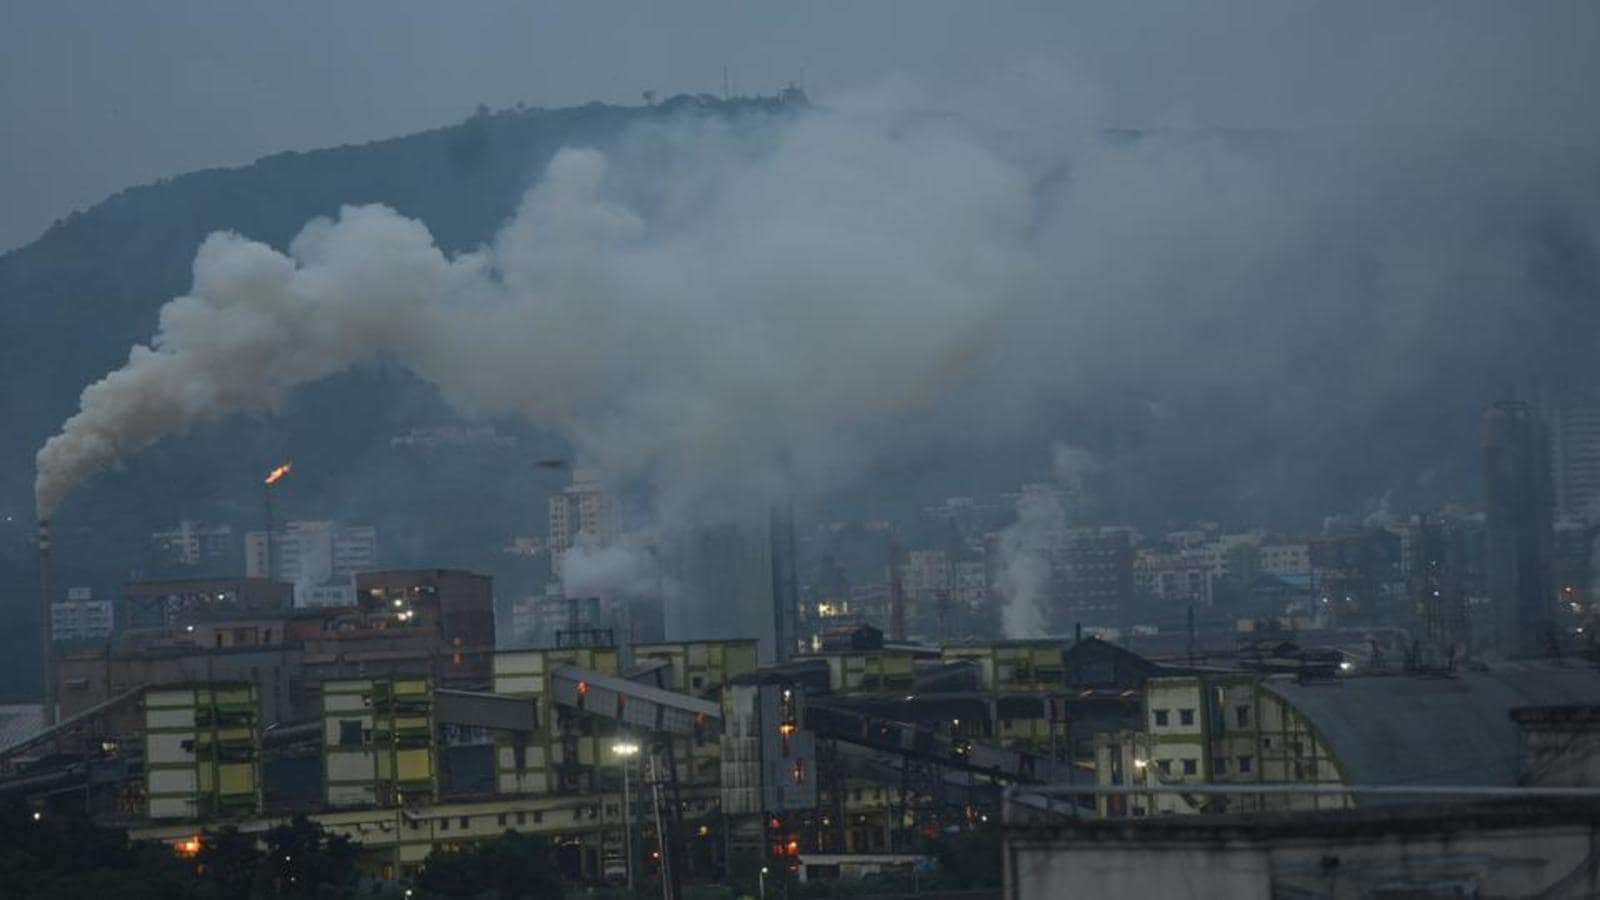 India, China most vulnerable to joint risks of climate change, air pollution thumbnail